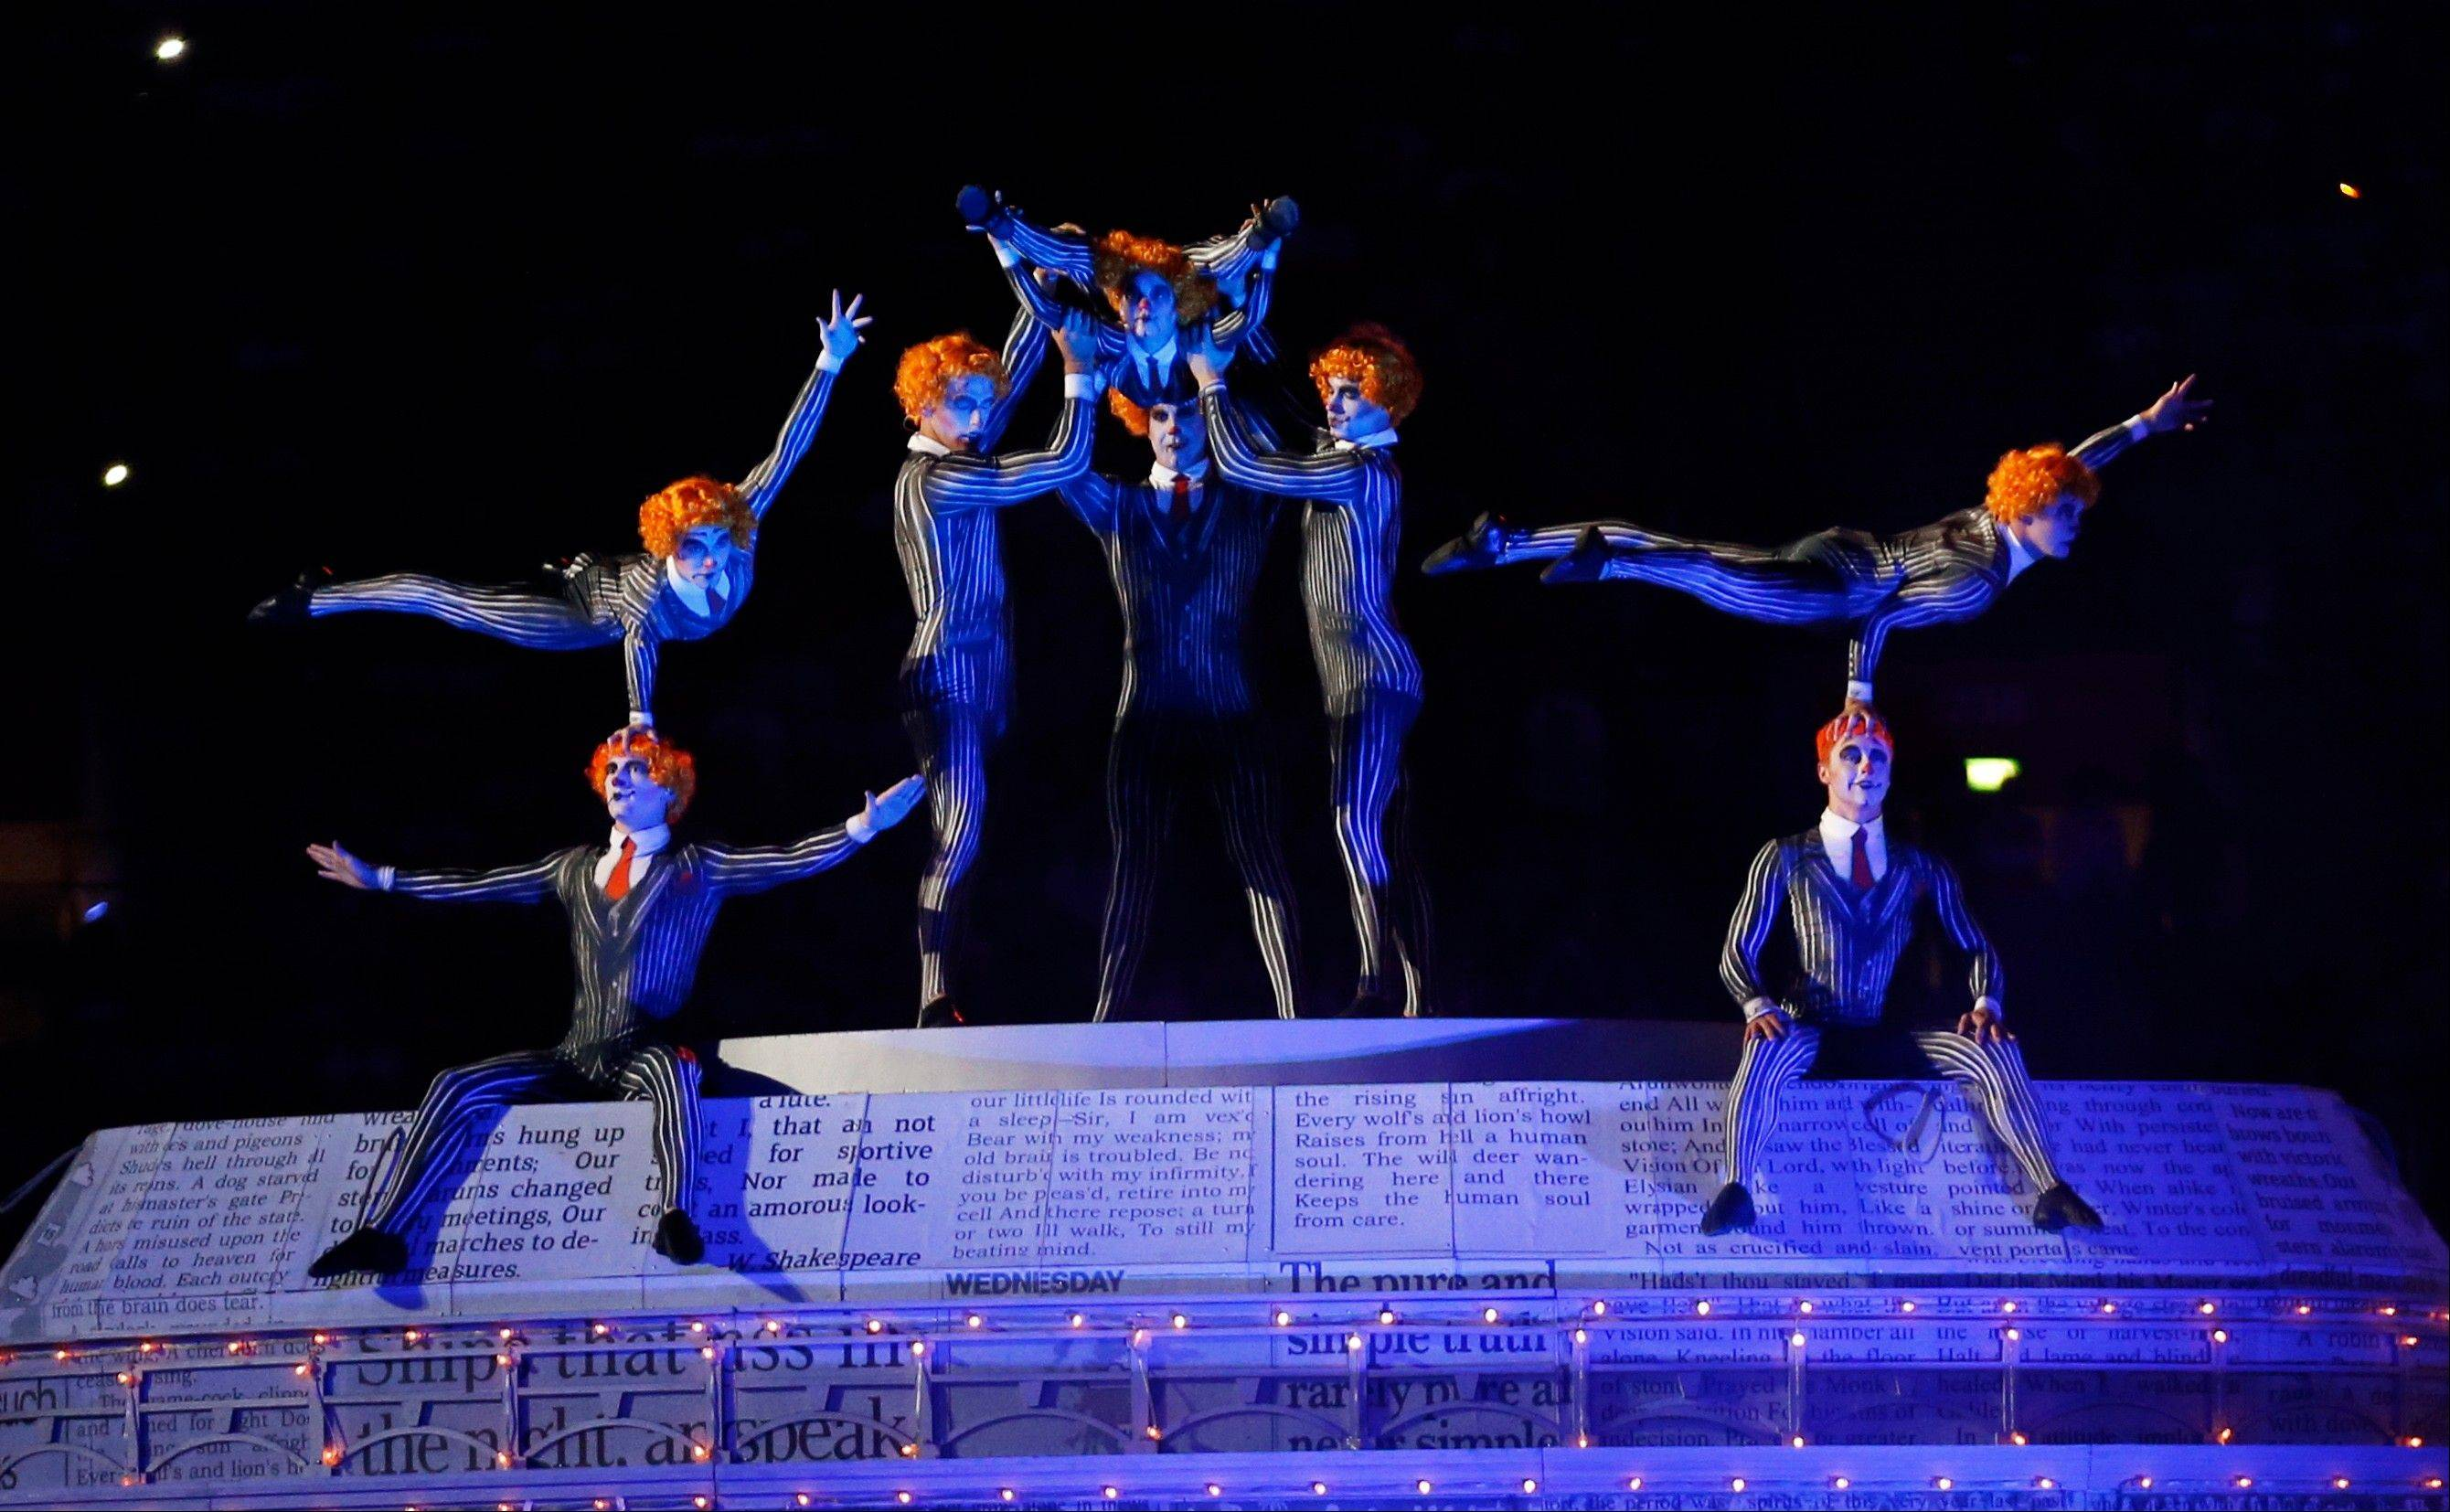 Acrobats perform onstage during the Closing Ceremony at the 2012 Summer Olympics.